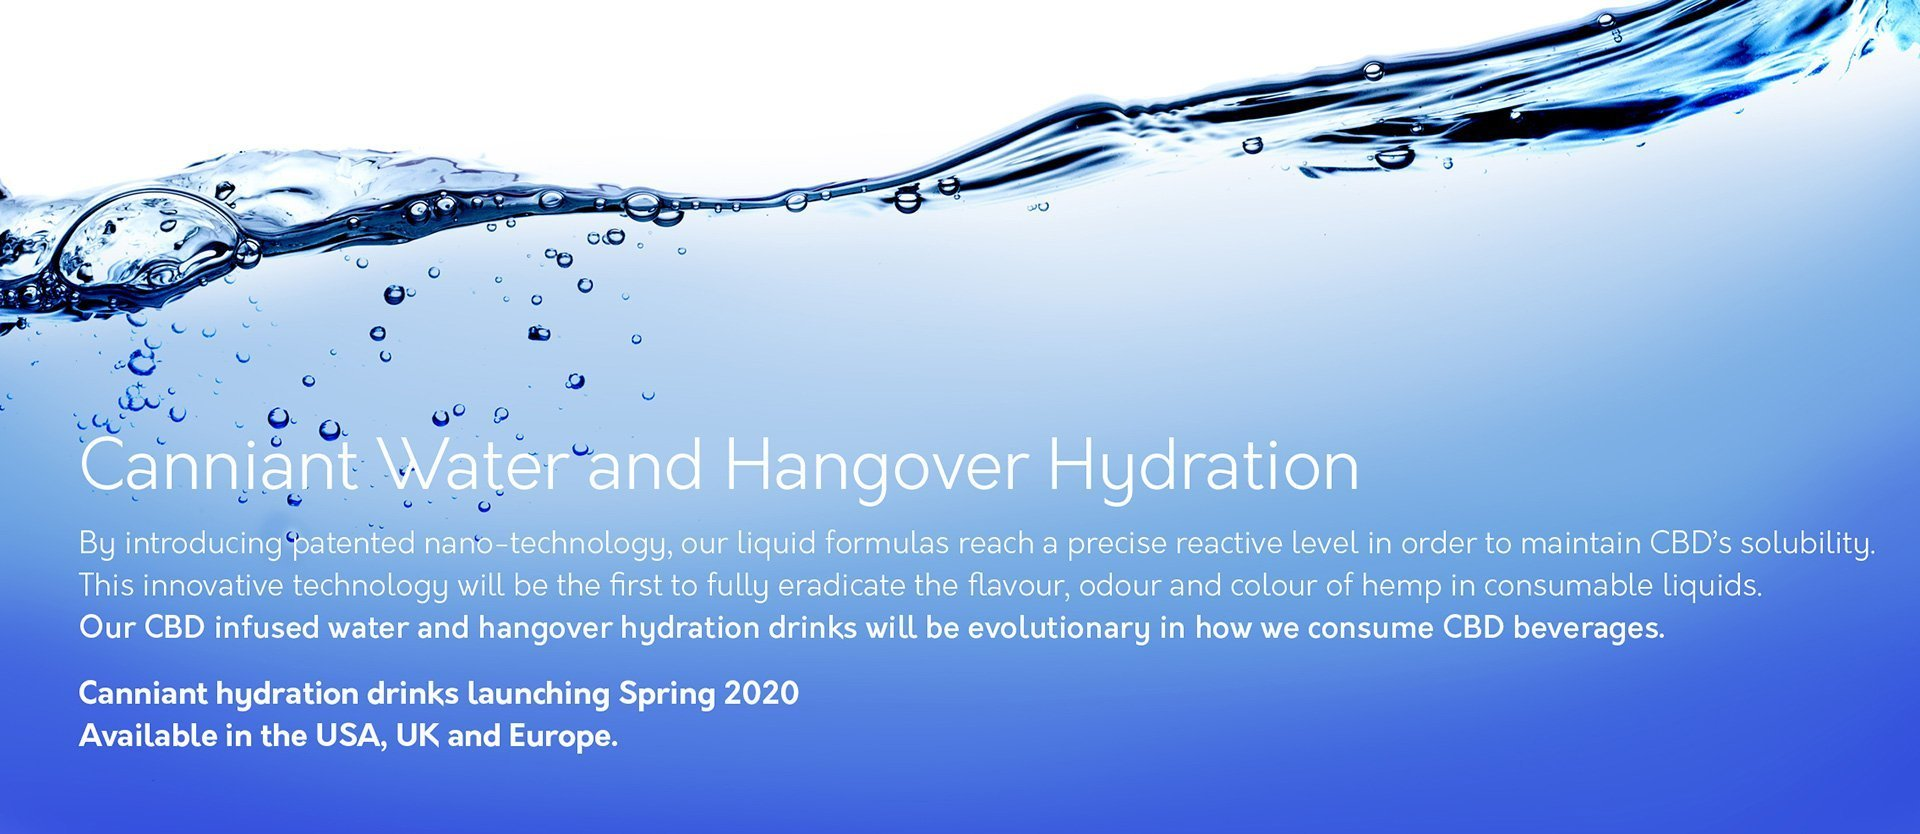 Canniant CBD Water and Hangover Hydration